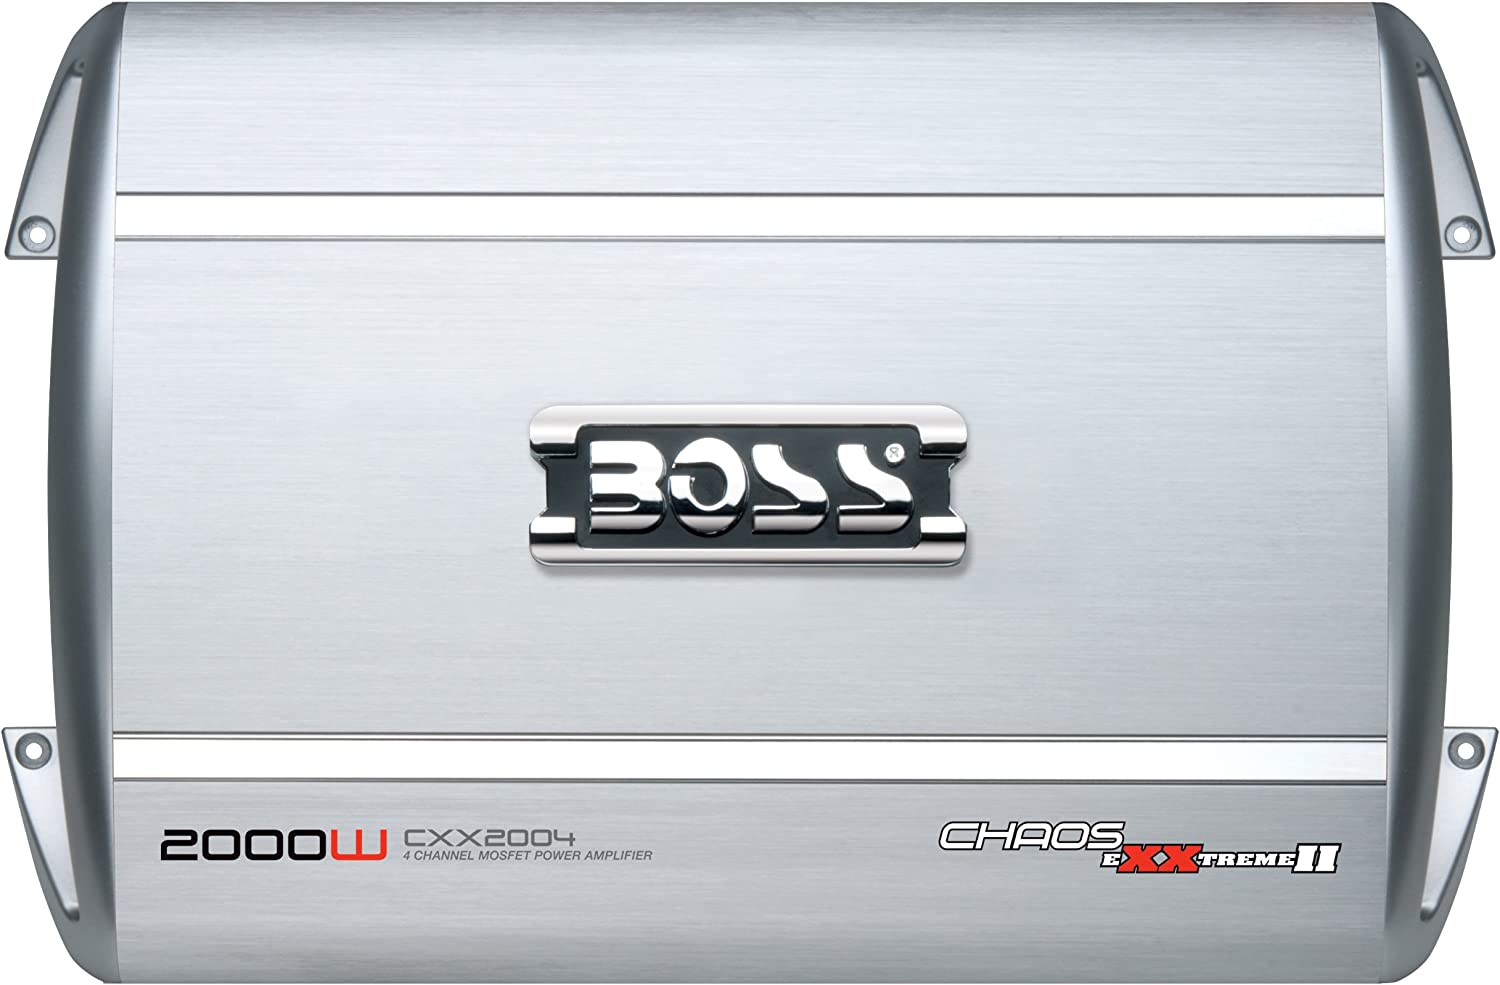 BOSS Audio Systems CXX1604 Chaos Exxtreme II 1600-Watts Full Range Class AB 4 Channel 2-8 Ohm Stable Amplifier with Remote Subwoofer Level Control